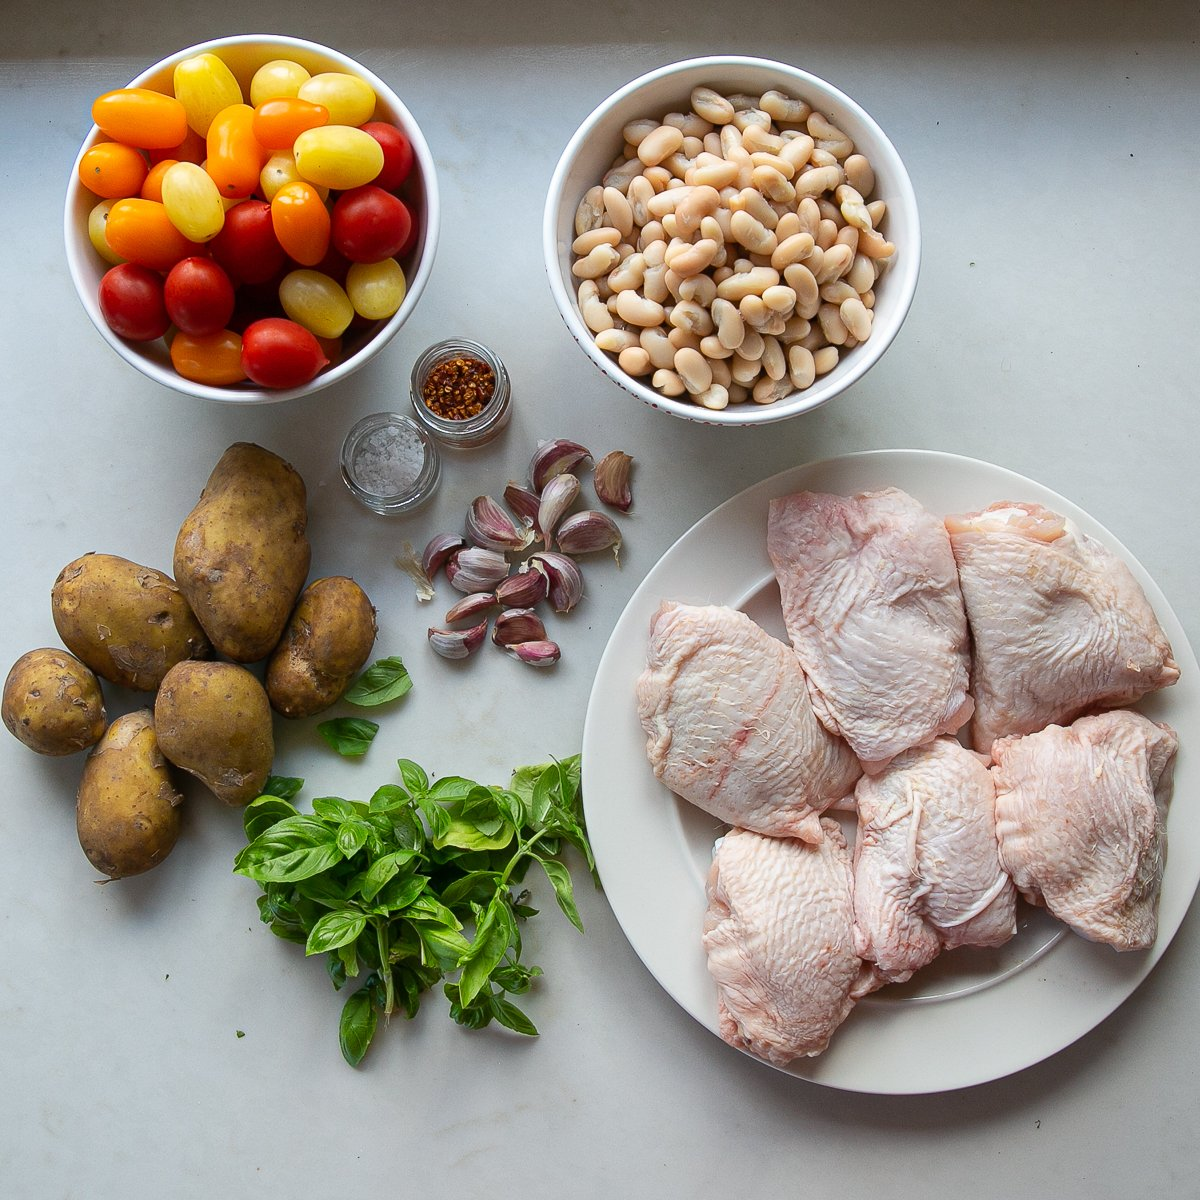 All the ingredients needed to make Jamie Oliver chicken